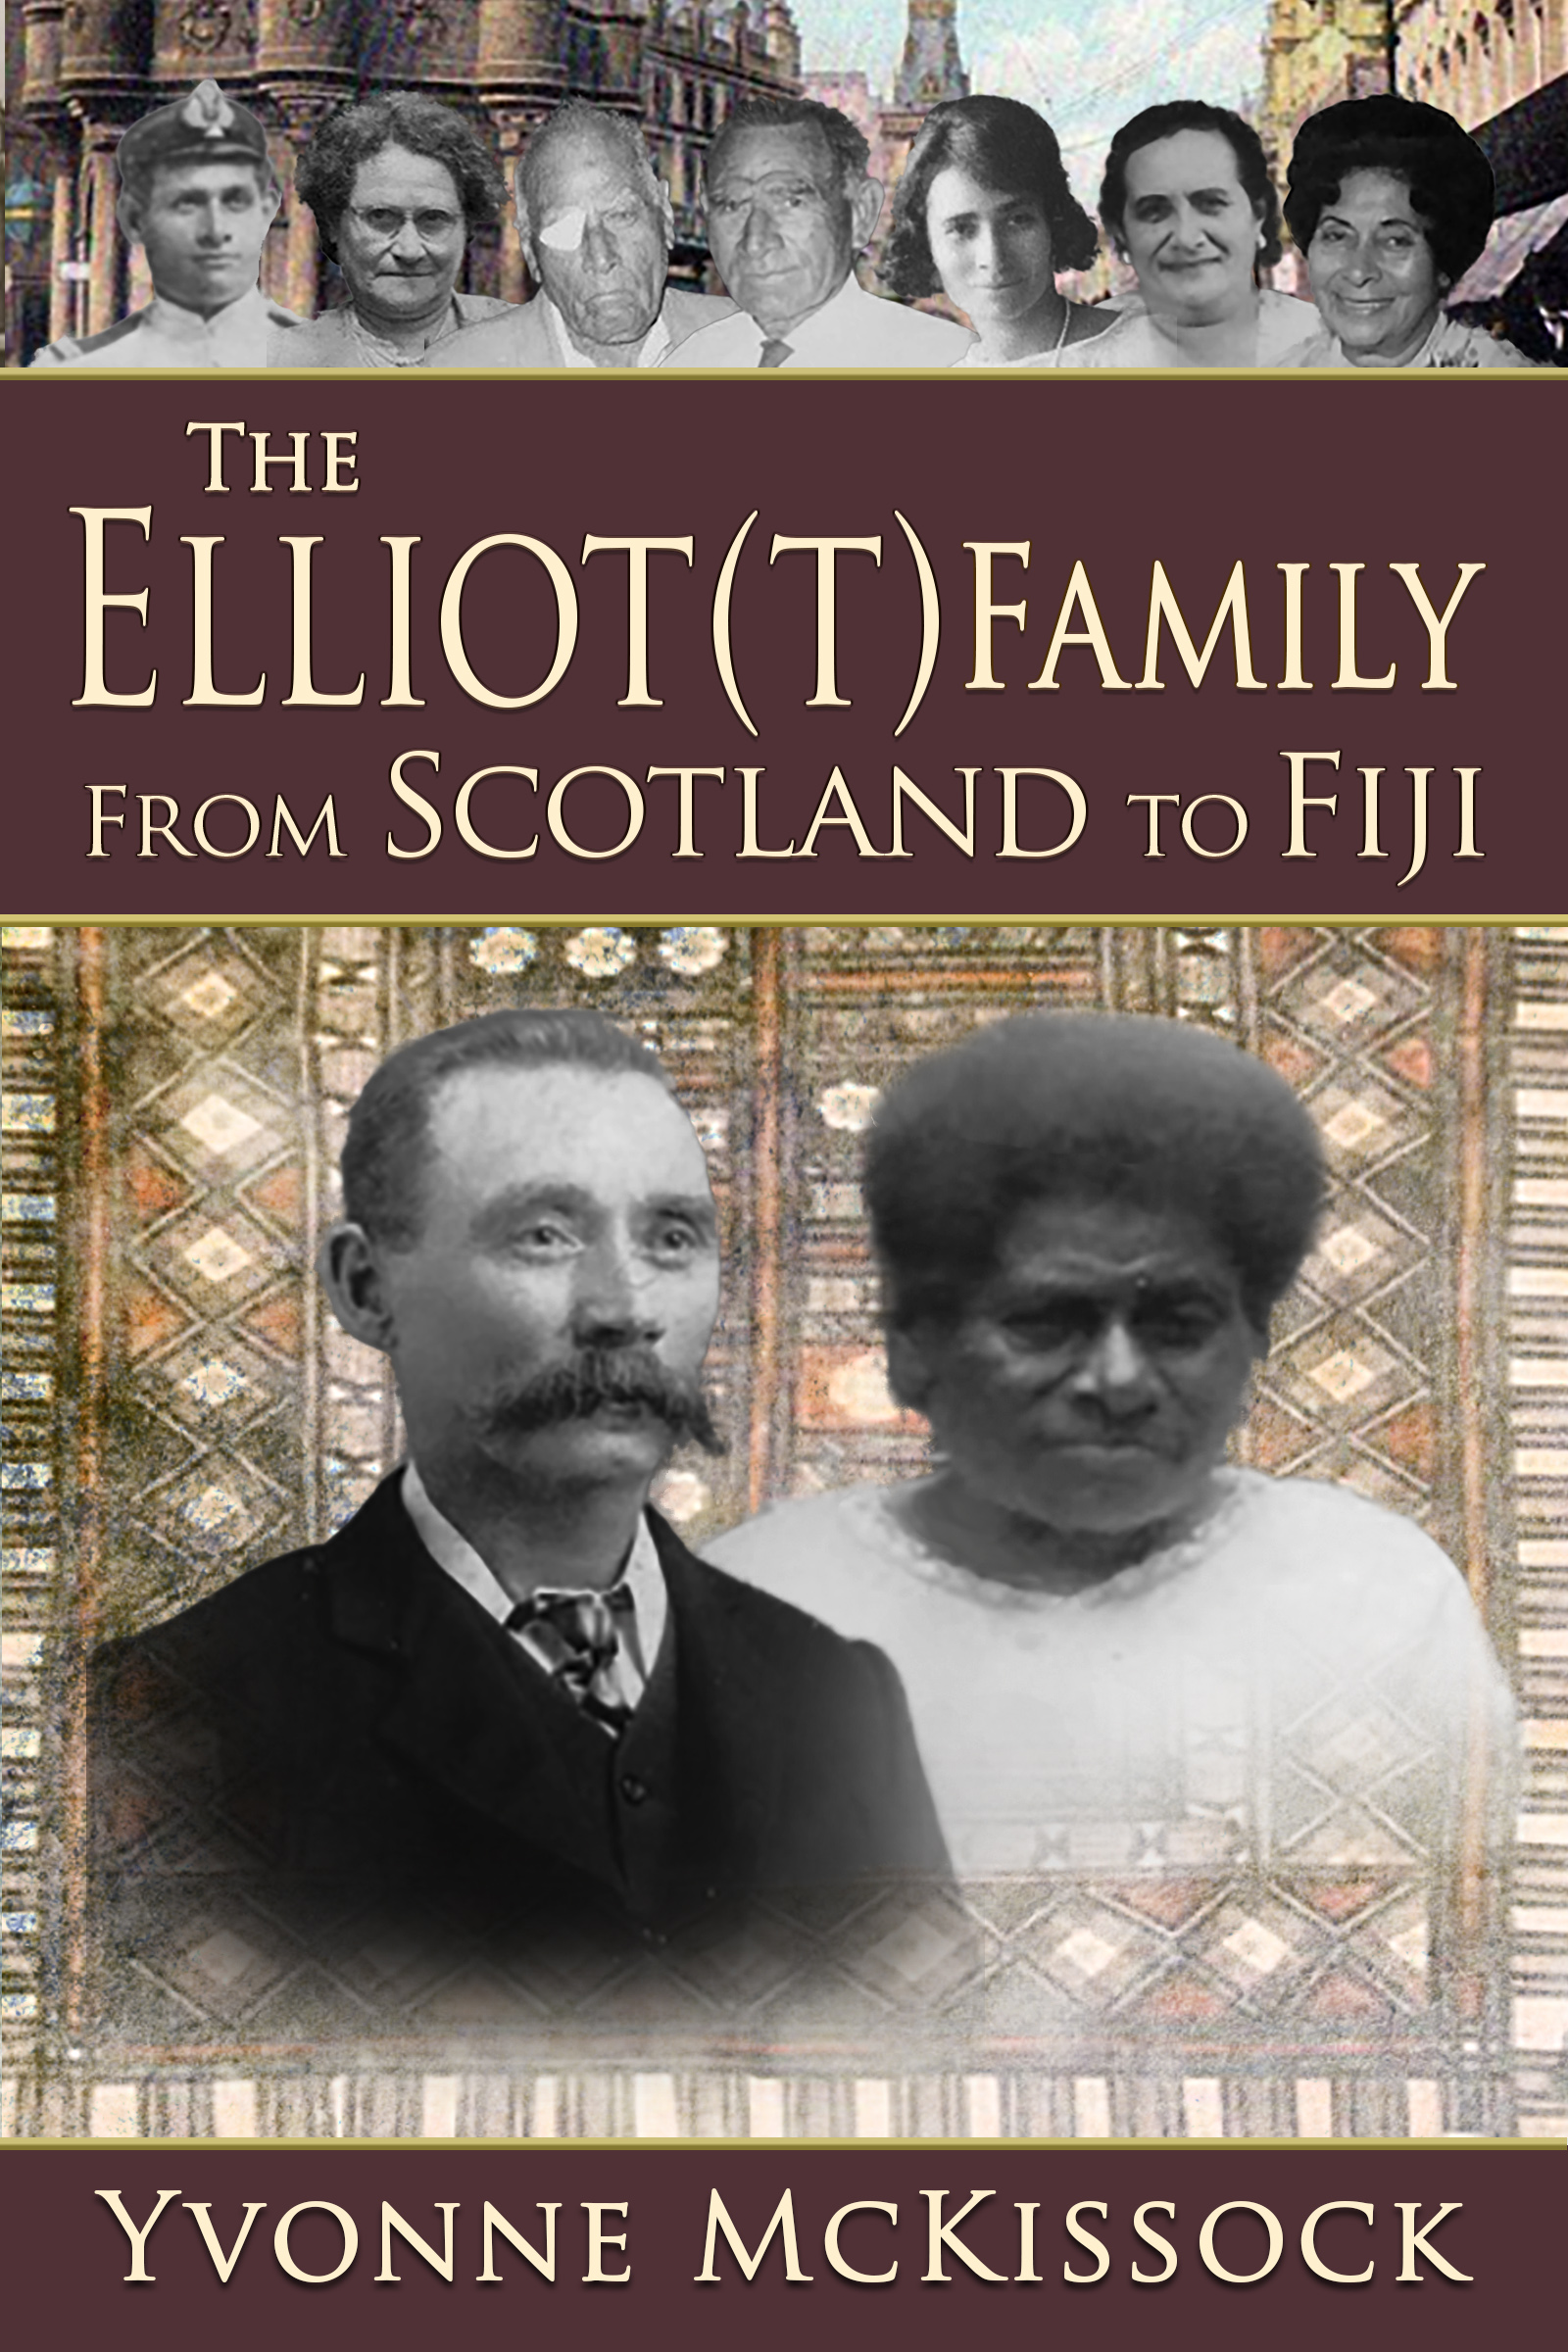 The Elliot(T) Family From Scotland to Fiji, an Ebook by Yvonne McKissock